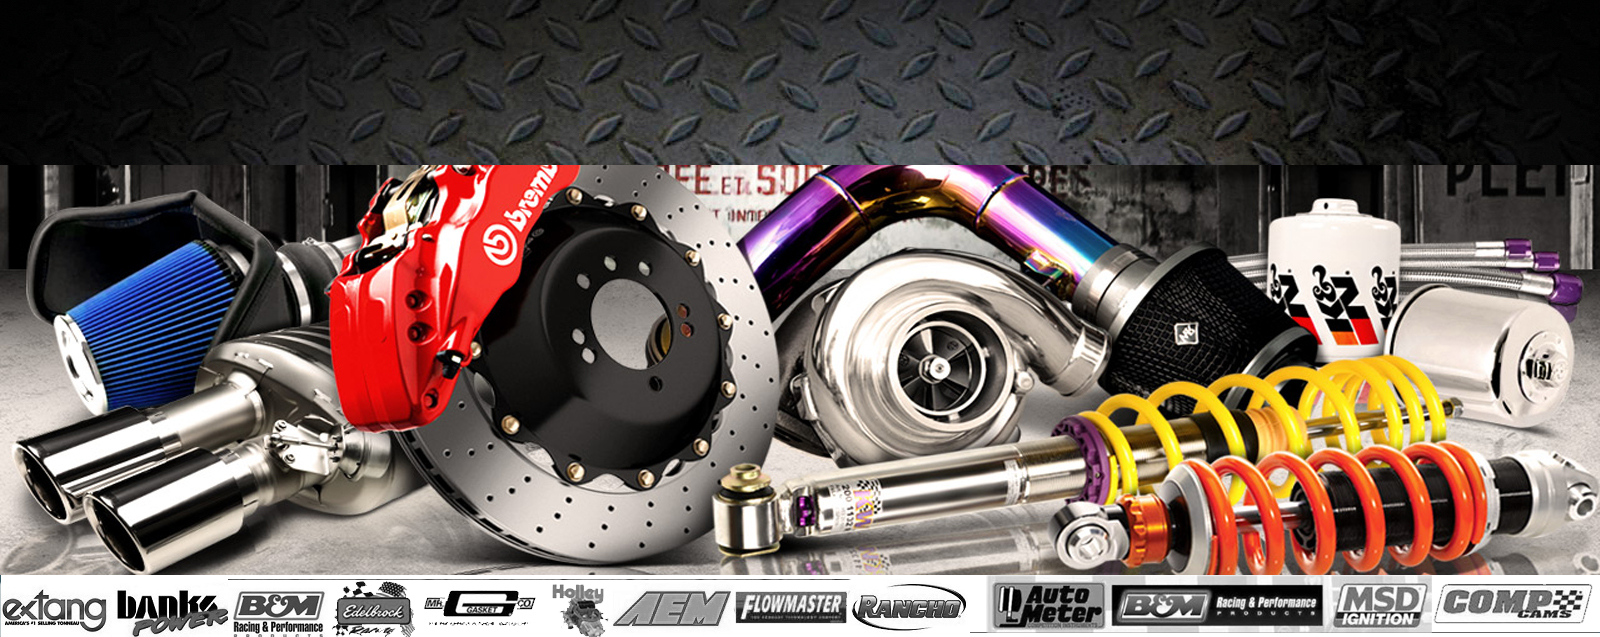 Save on Custom and Performance Parts